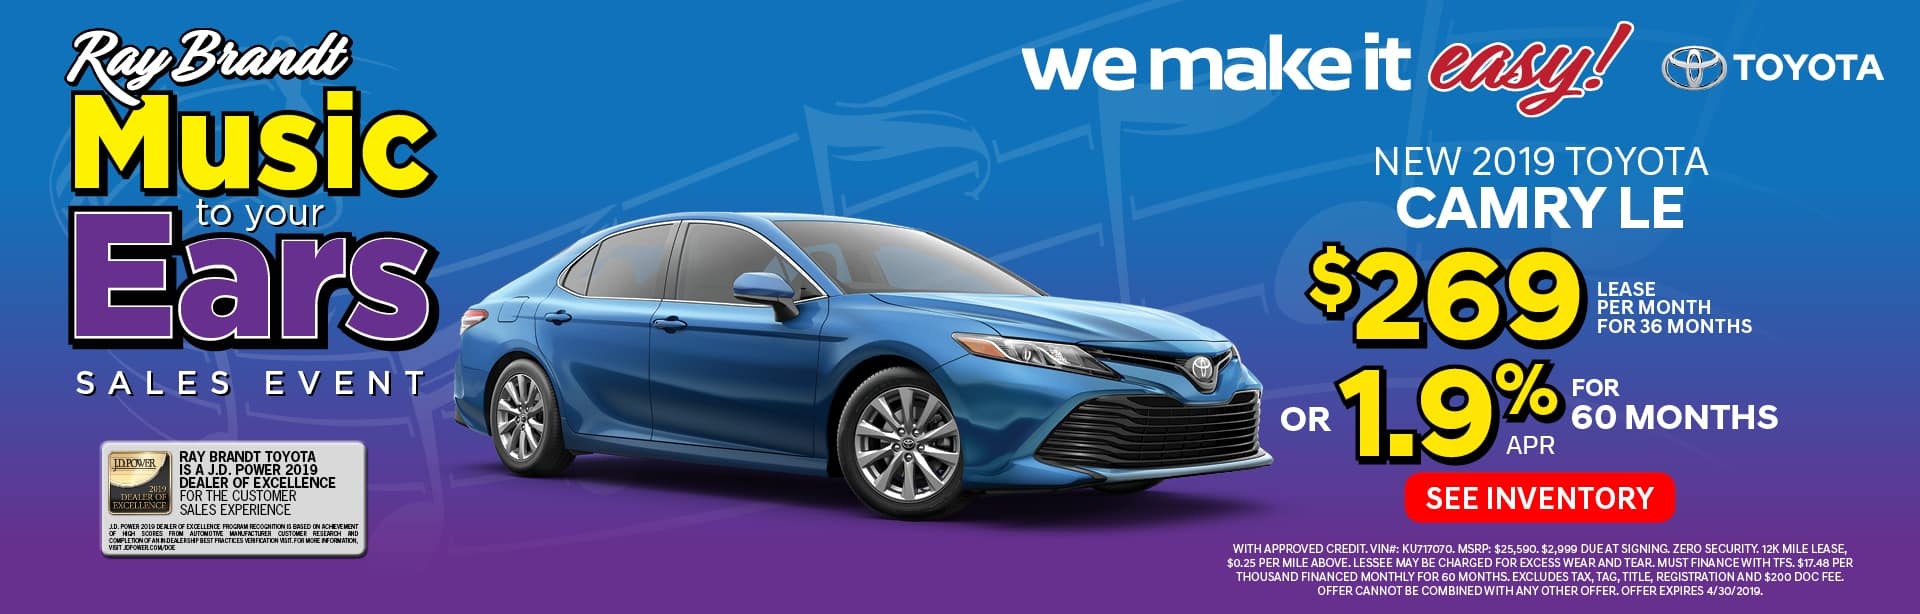 CAMRY BANNER